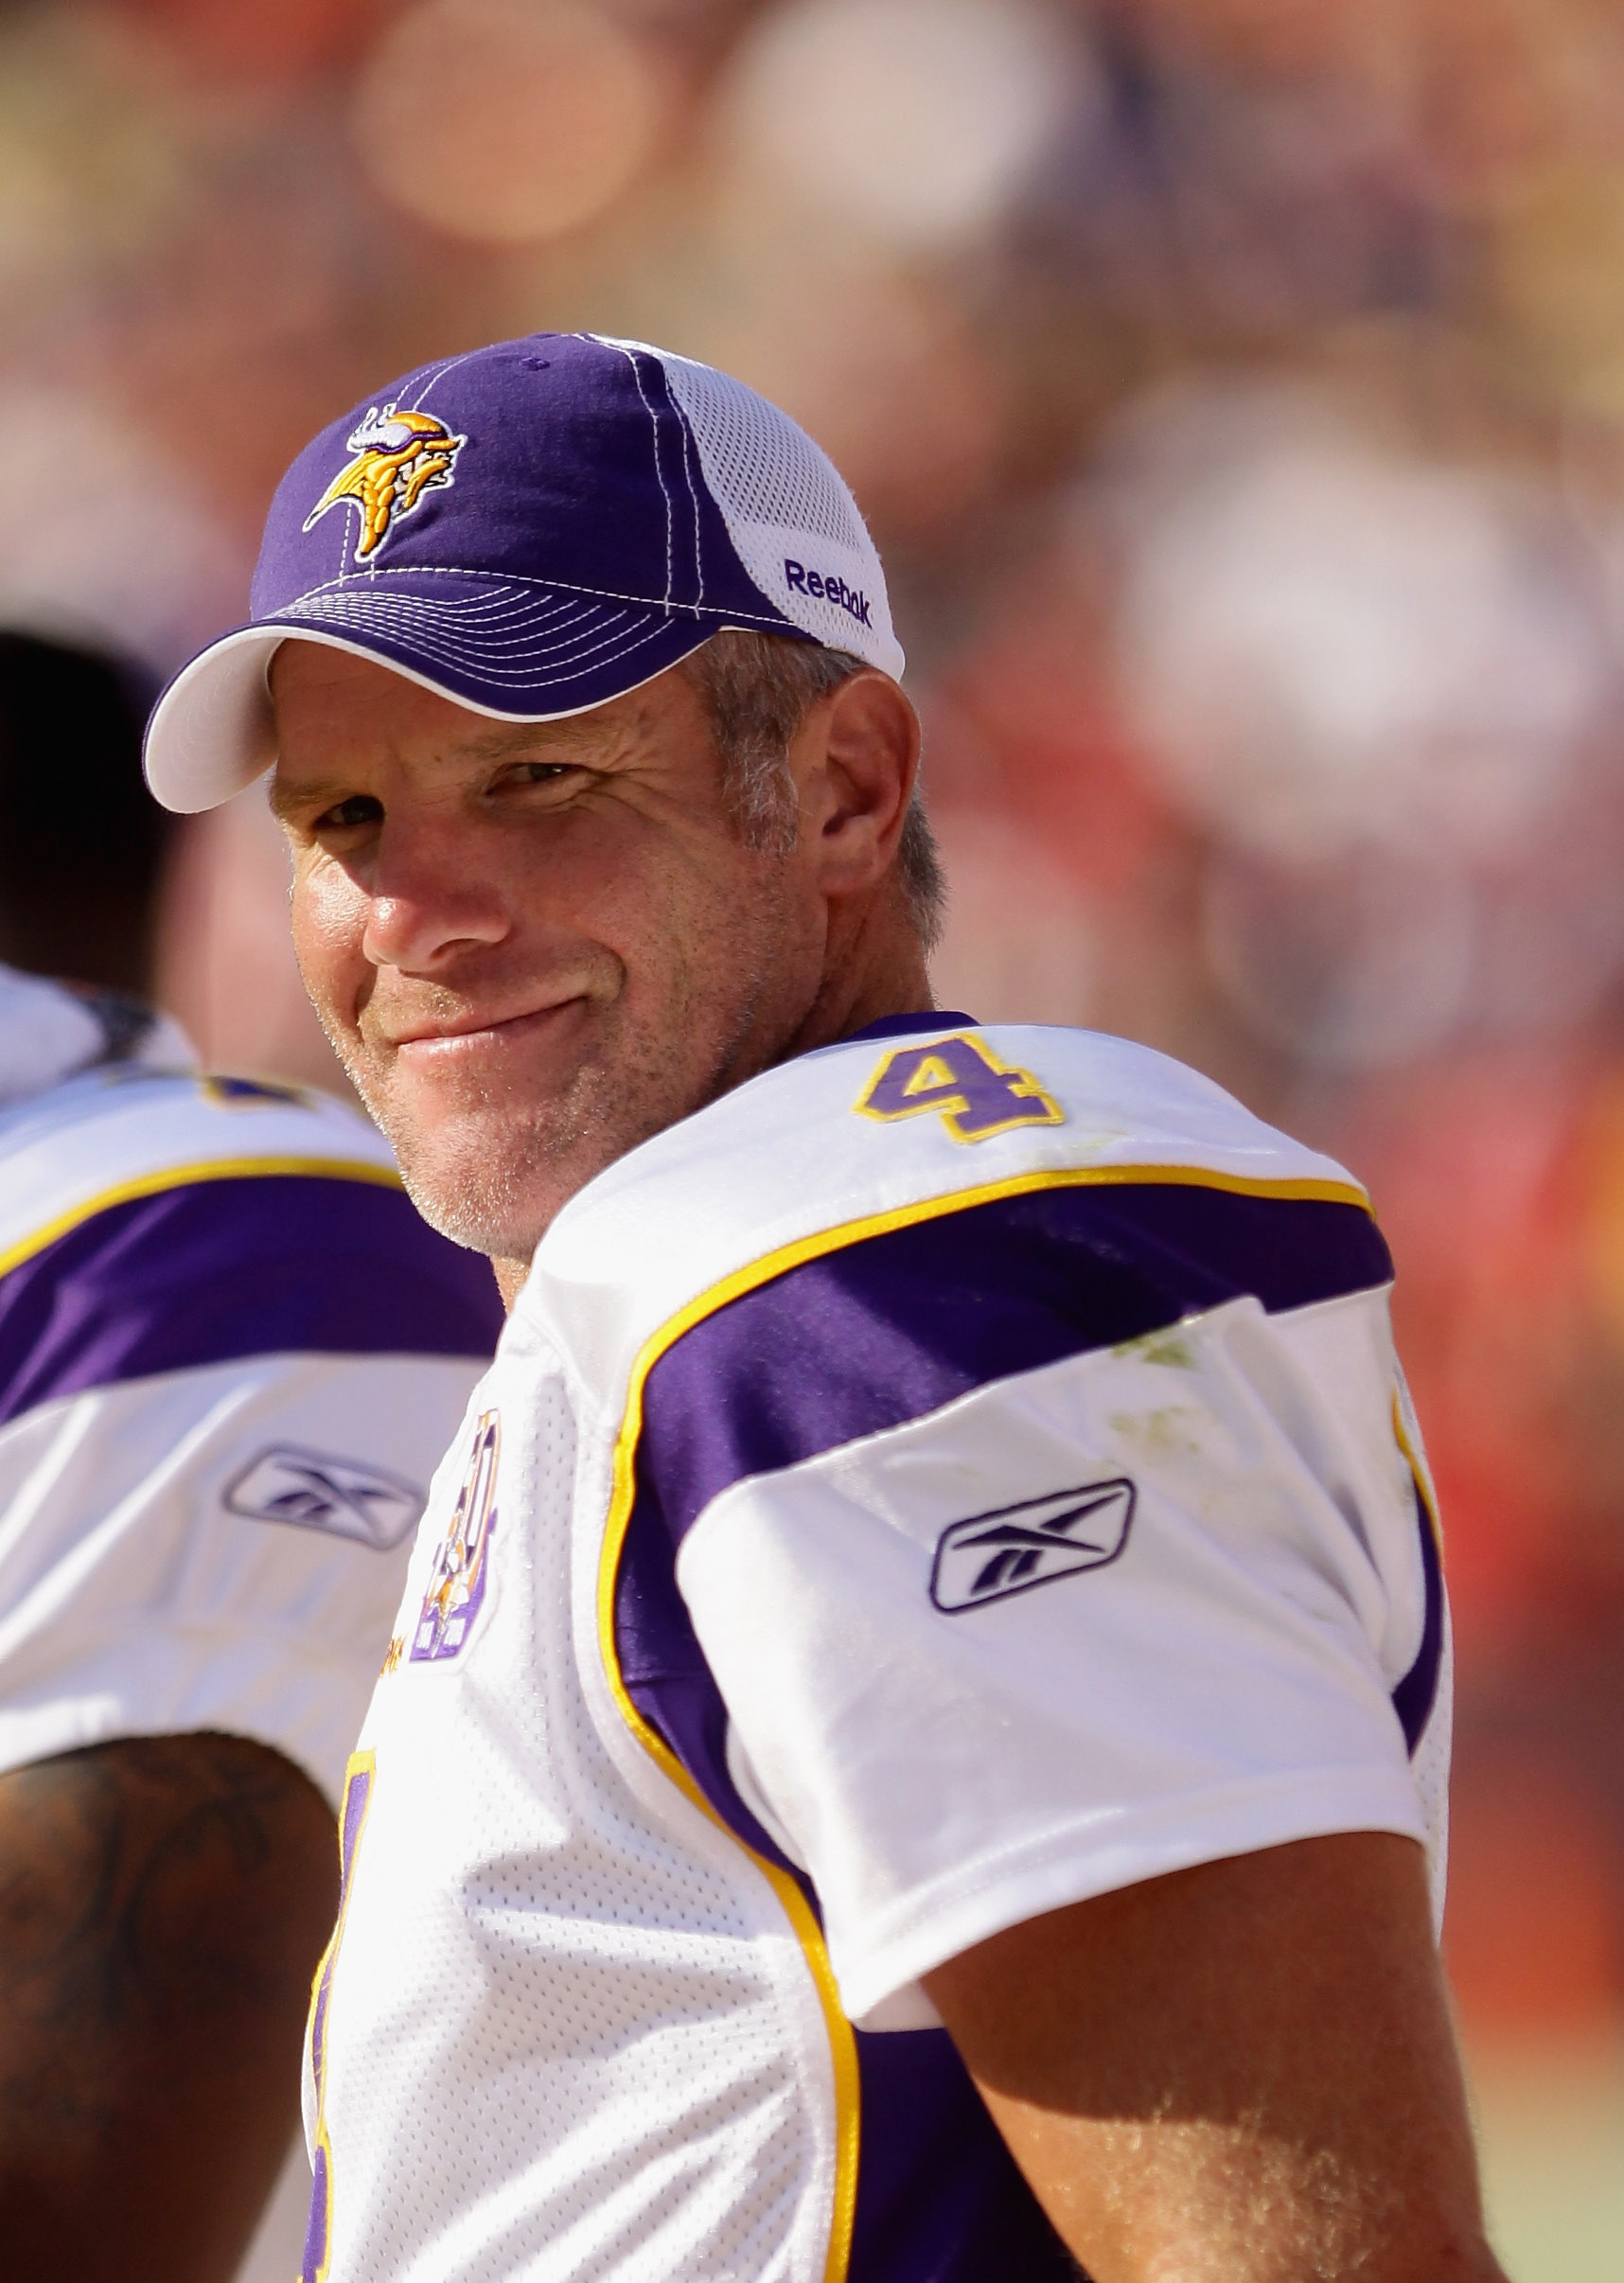 SAN FRANCISCO - AUGUST 22:  Brett Favre #4 of the Minnesota Vikings stands on the sidelines during their preseason game against the San Francisco 49ers at Candlestick Park on August 22, 2010 in San Francisco, California.  (Photo by Ezra Shaw/Getty Images)